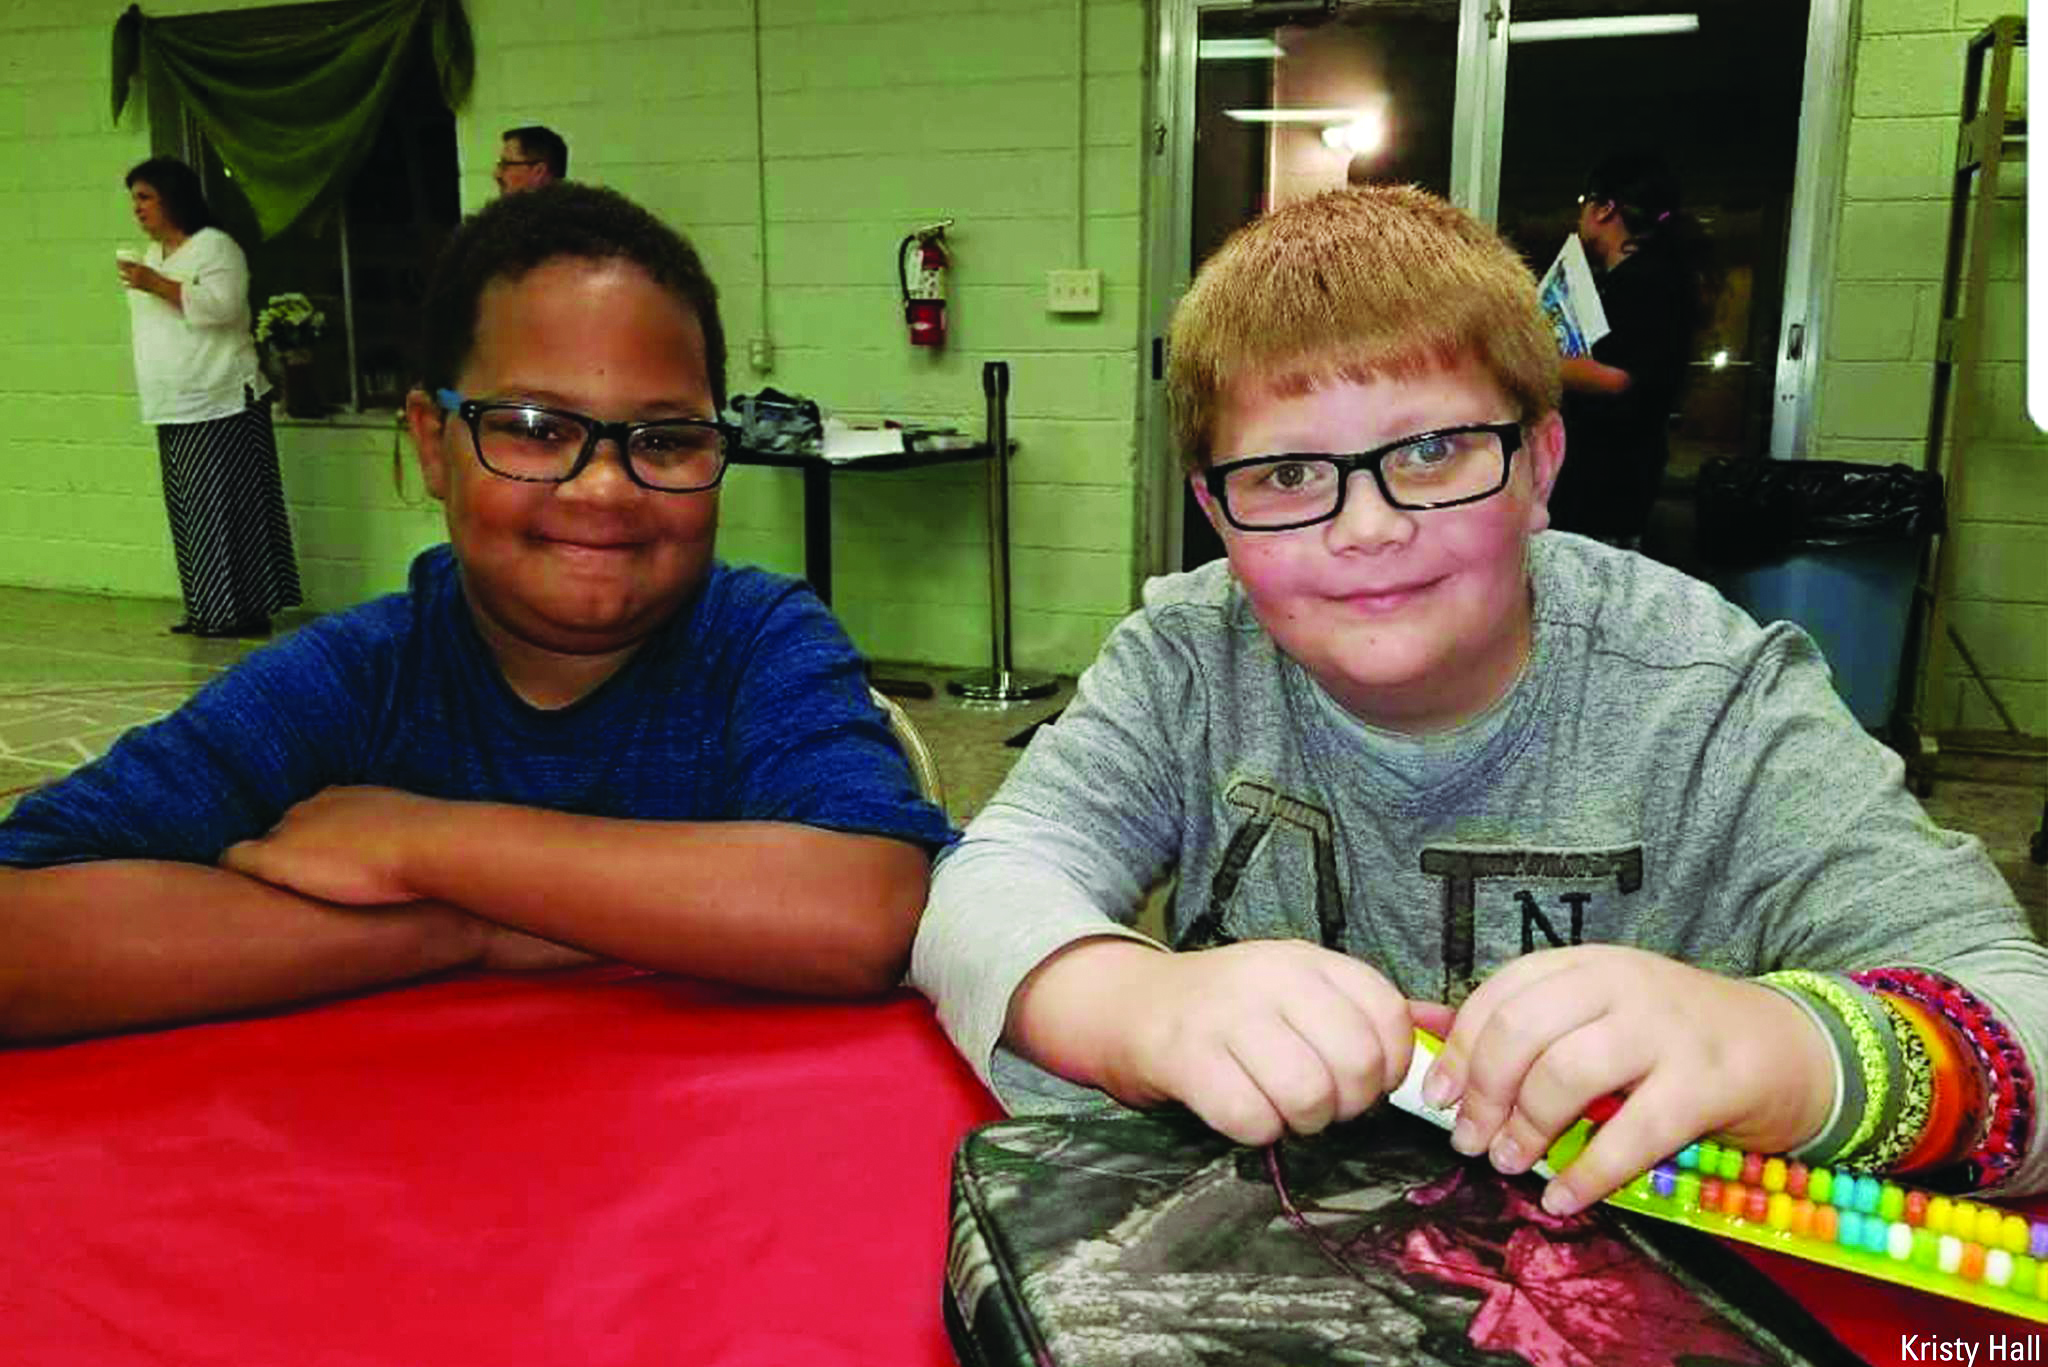 KJ Gross and Kaleb Klakulak sit at a table and smile. One black boy and one white boy with red hair, both with glasses